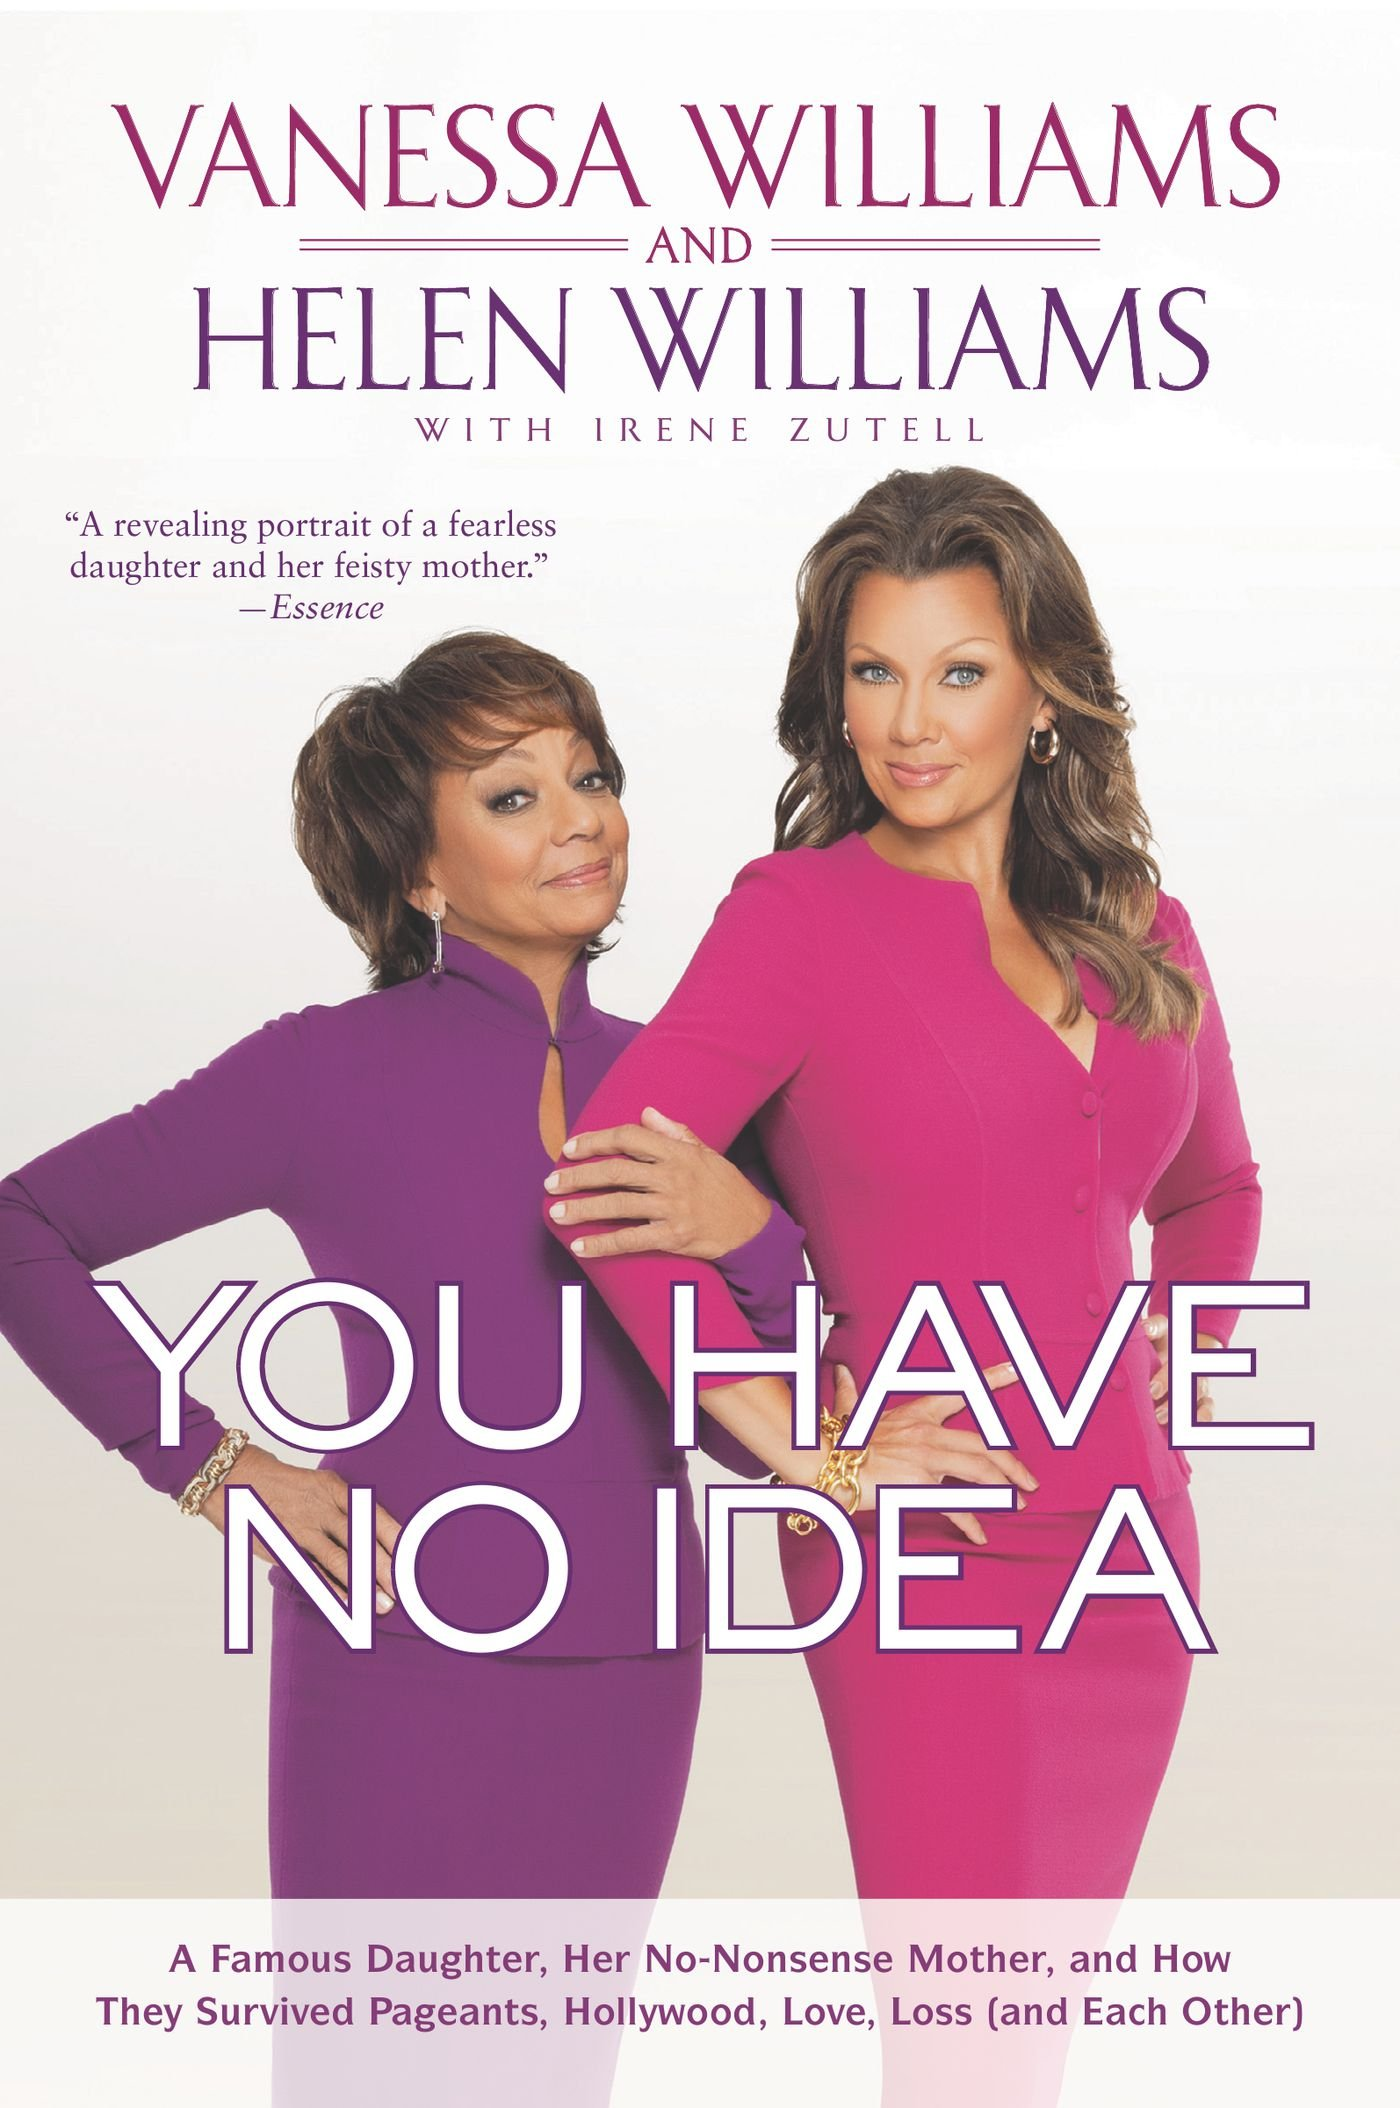 You Have No Idea: A Famous Daughter, Her No-nonsense Mother, and How They Survived Pageants, Holly wood, Love, Loss (and Each Other)